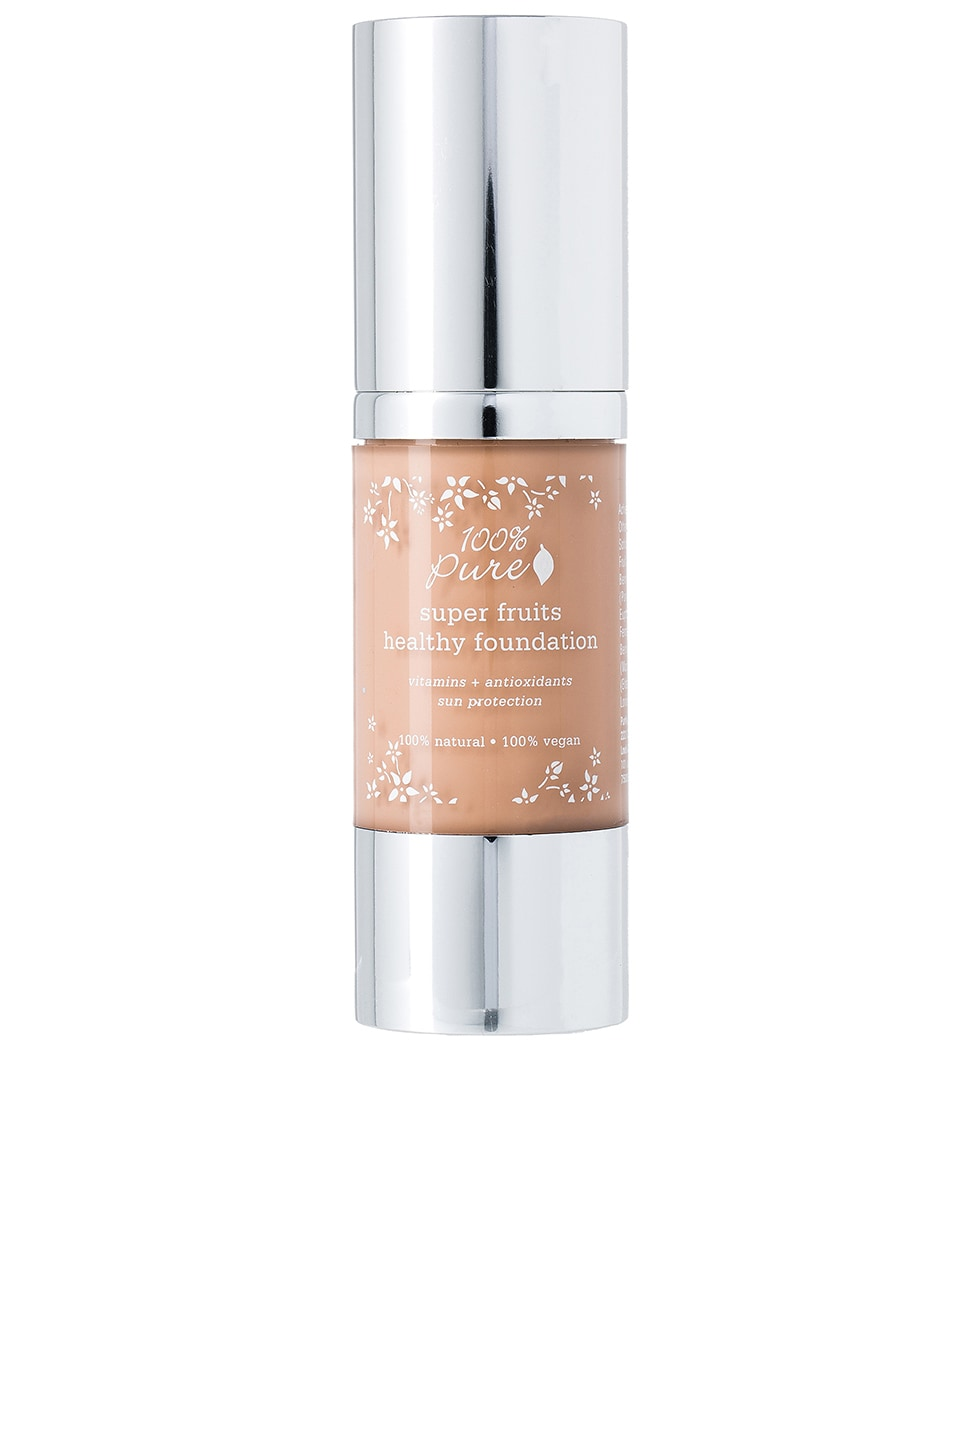 100% Pure Full Coverage Foundation w/ Sun Protection in Sand